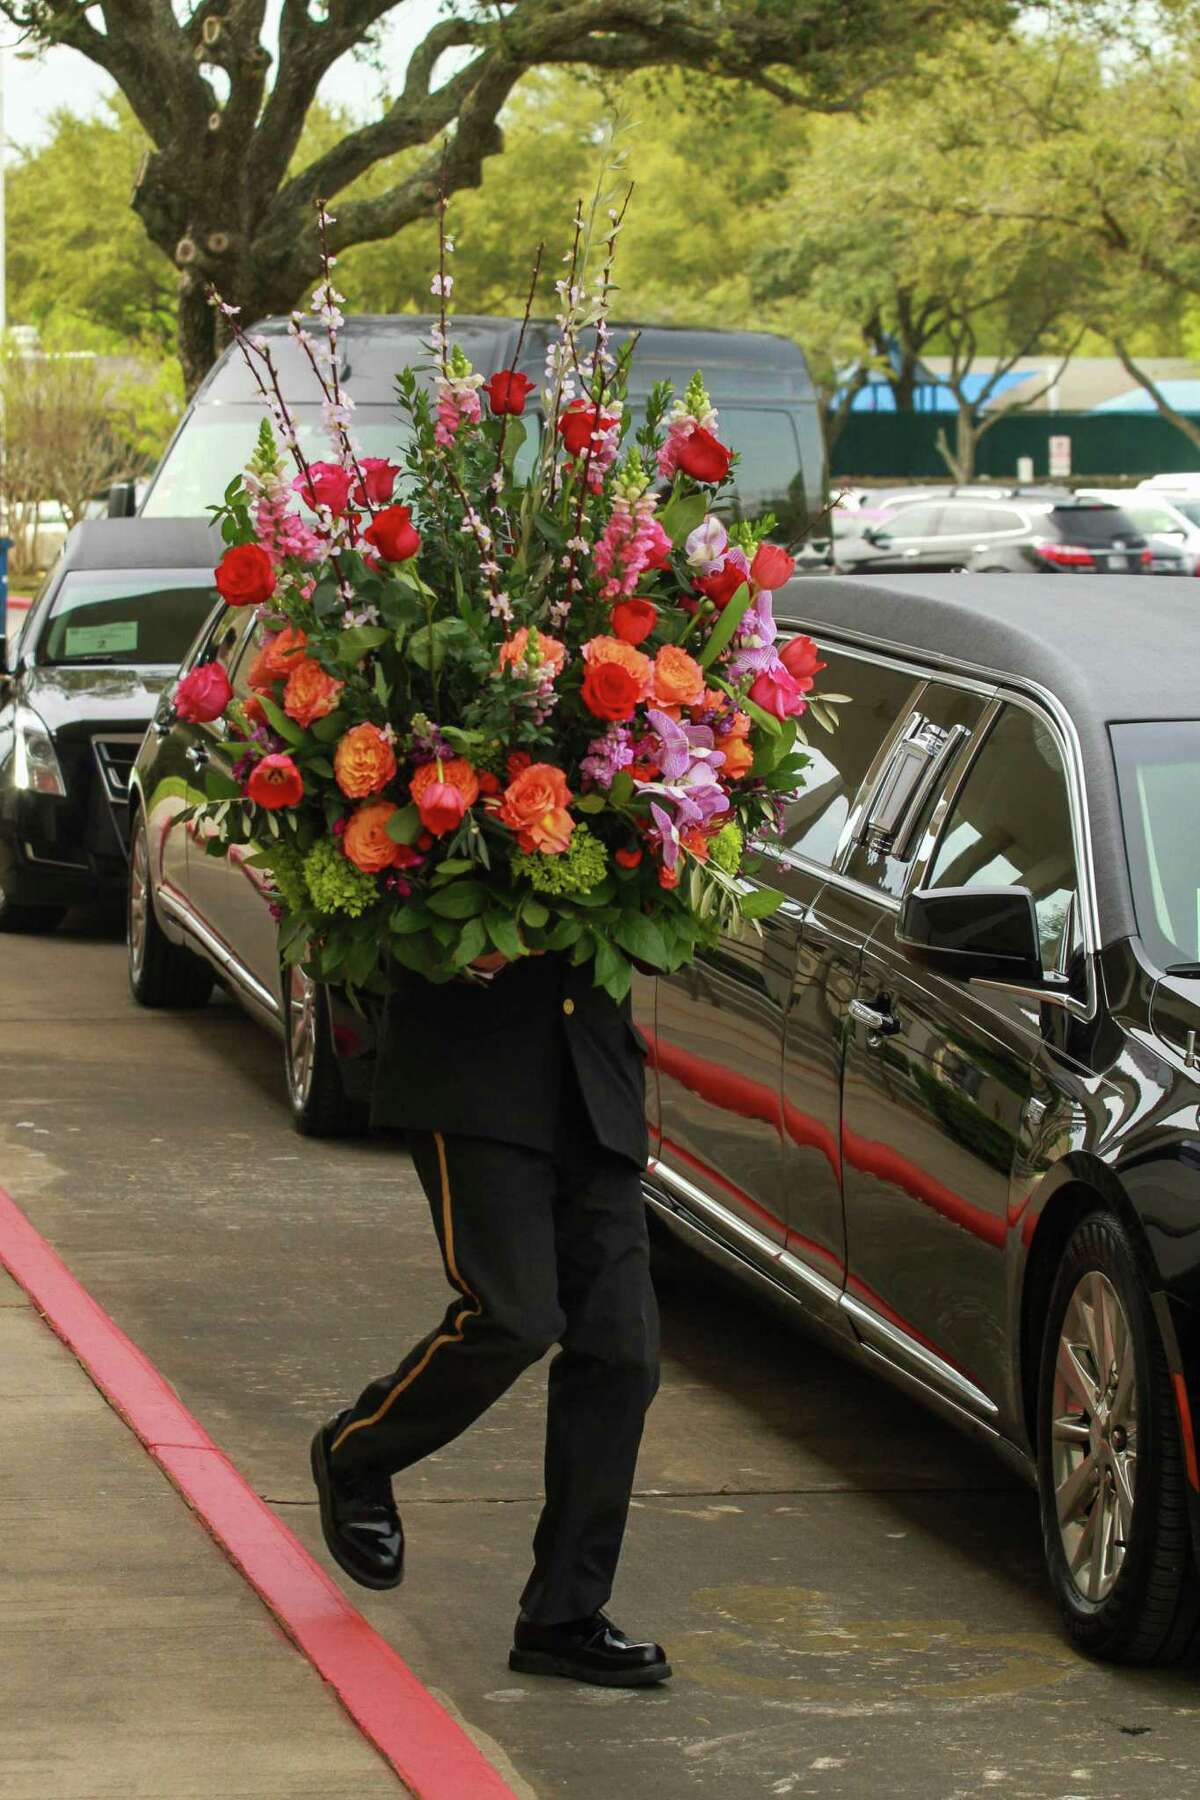 Removing flower arrangements from Congregation Beth Israel after the services for Houston philanthropist Lester Smith.